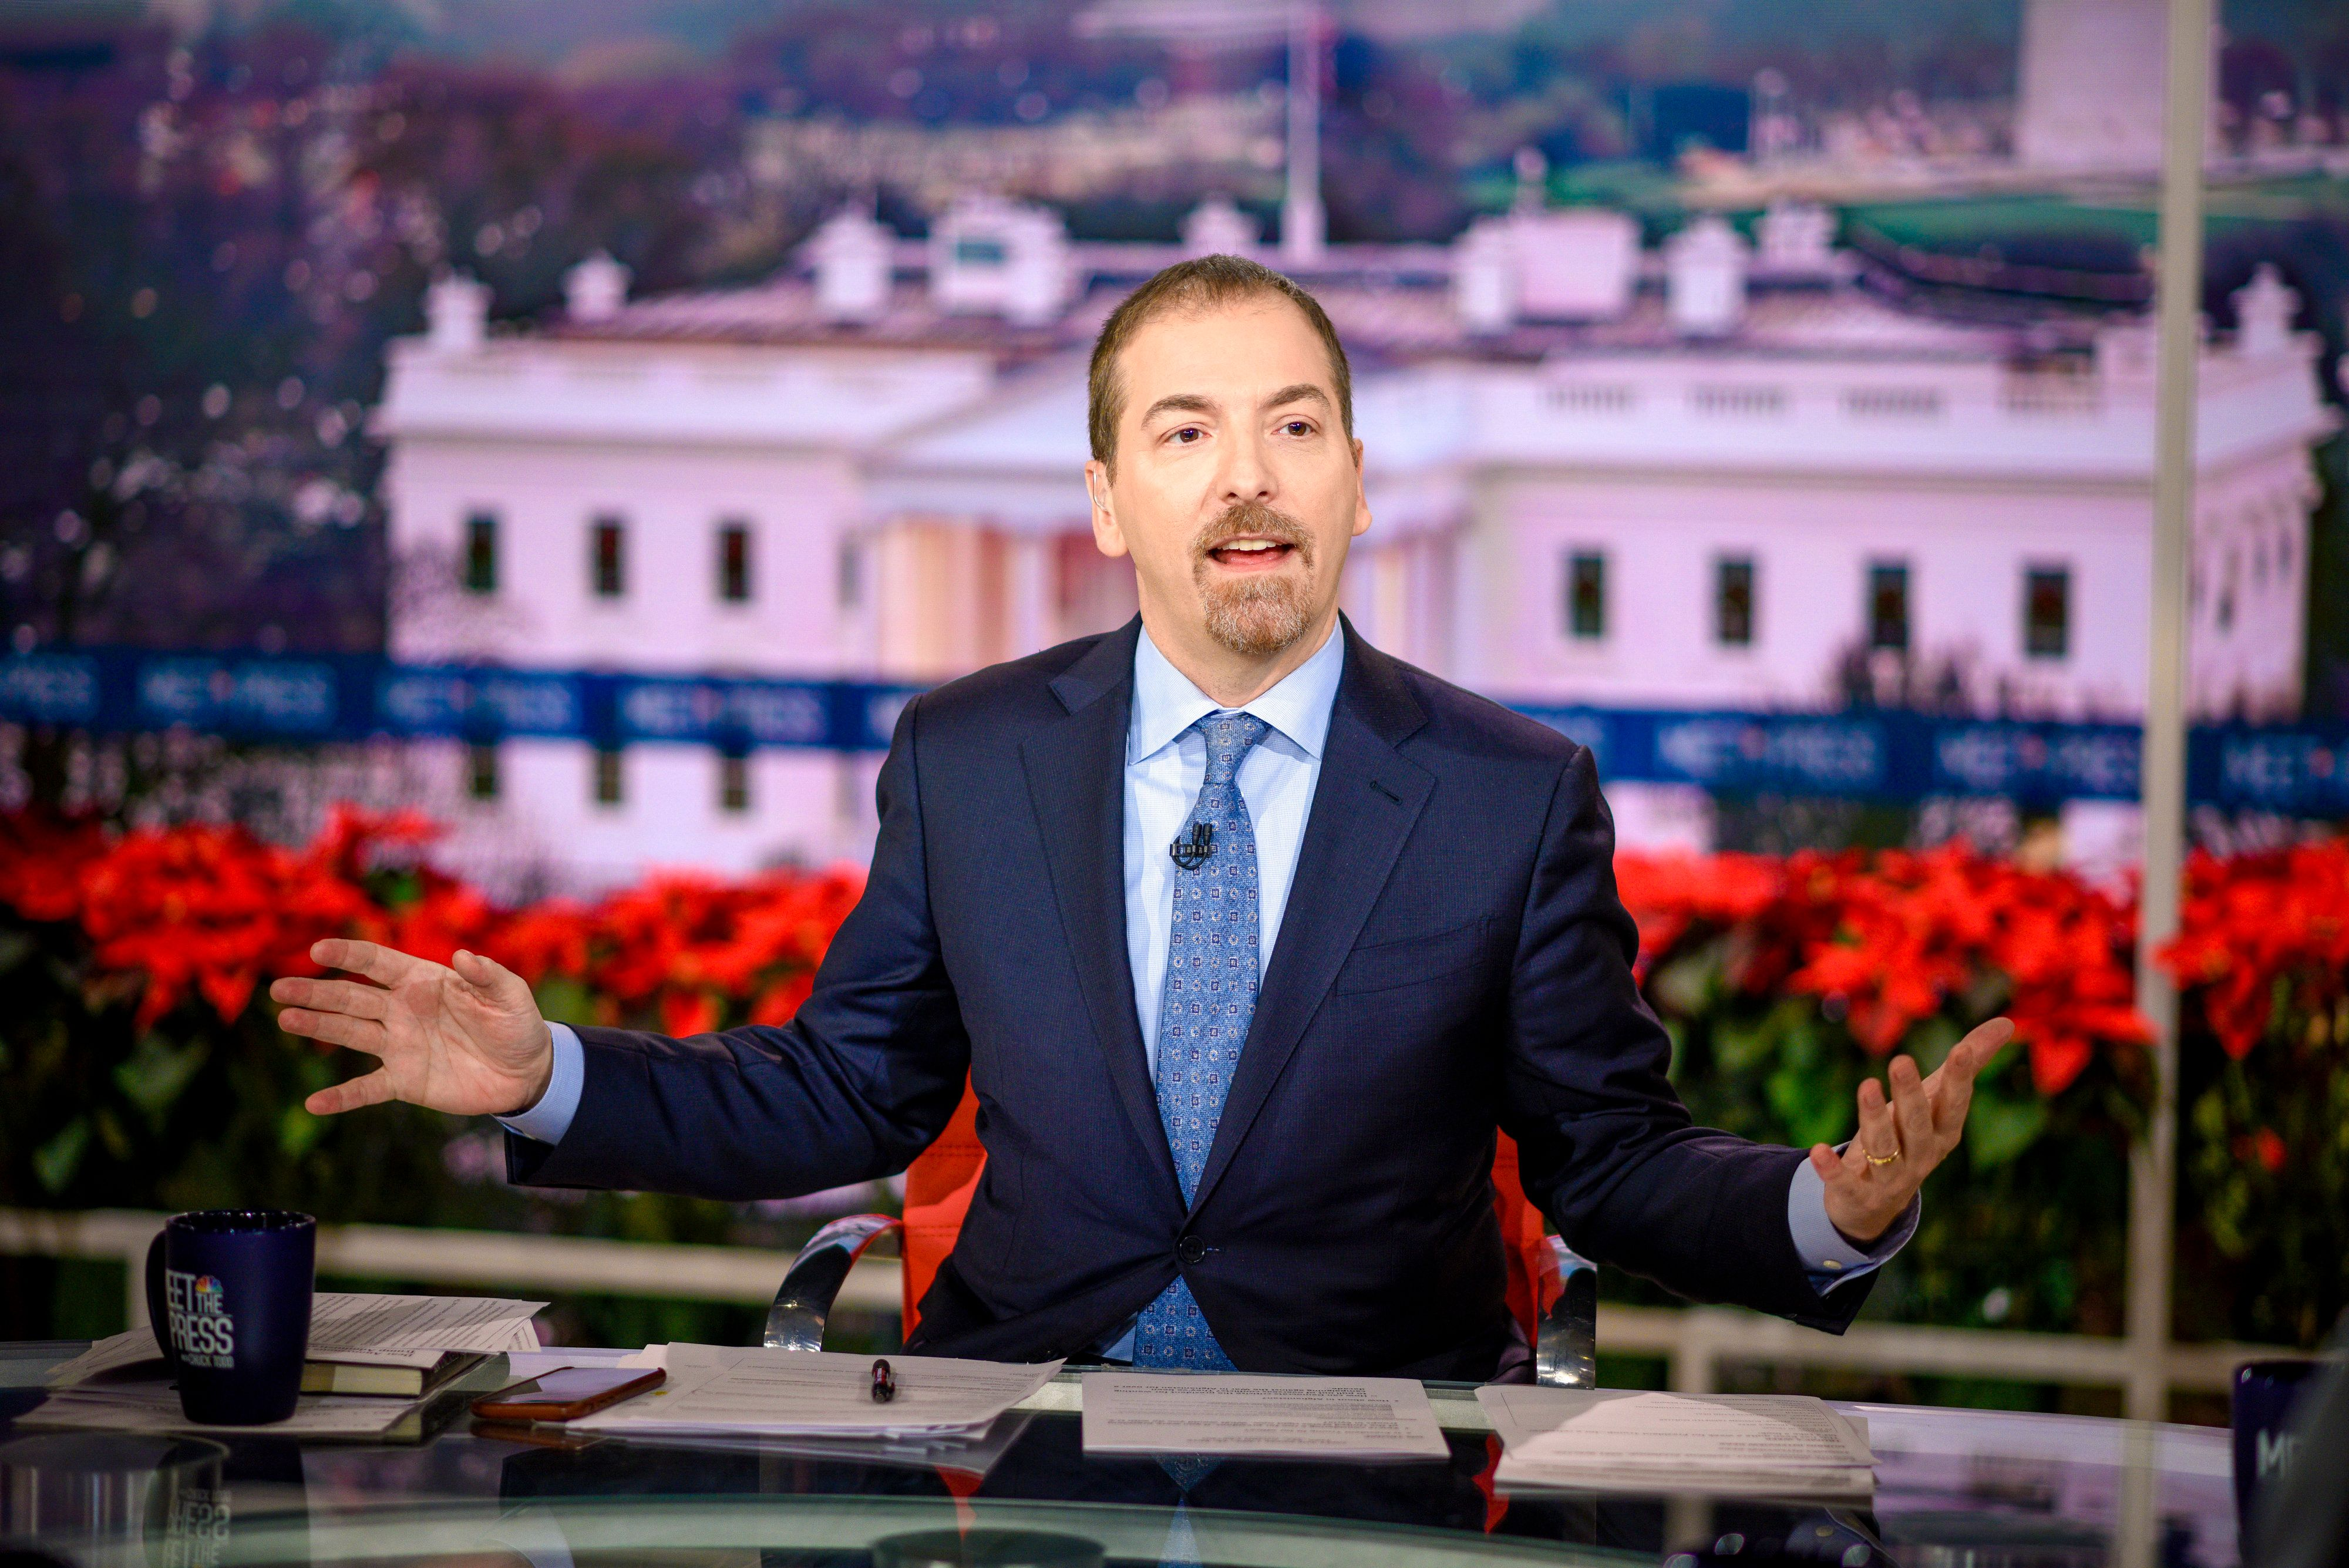 MEET THE PRESS -- Pictured: (l-r)  Moderator Chuck Todd appears on 'Meet the Press' in Washington, D.C., Sunday, Dec. 23, 2018.  (Photo by: William B. Plowman/NBC/NBC NewsWire via Getty Images)